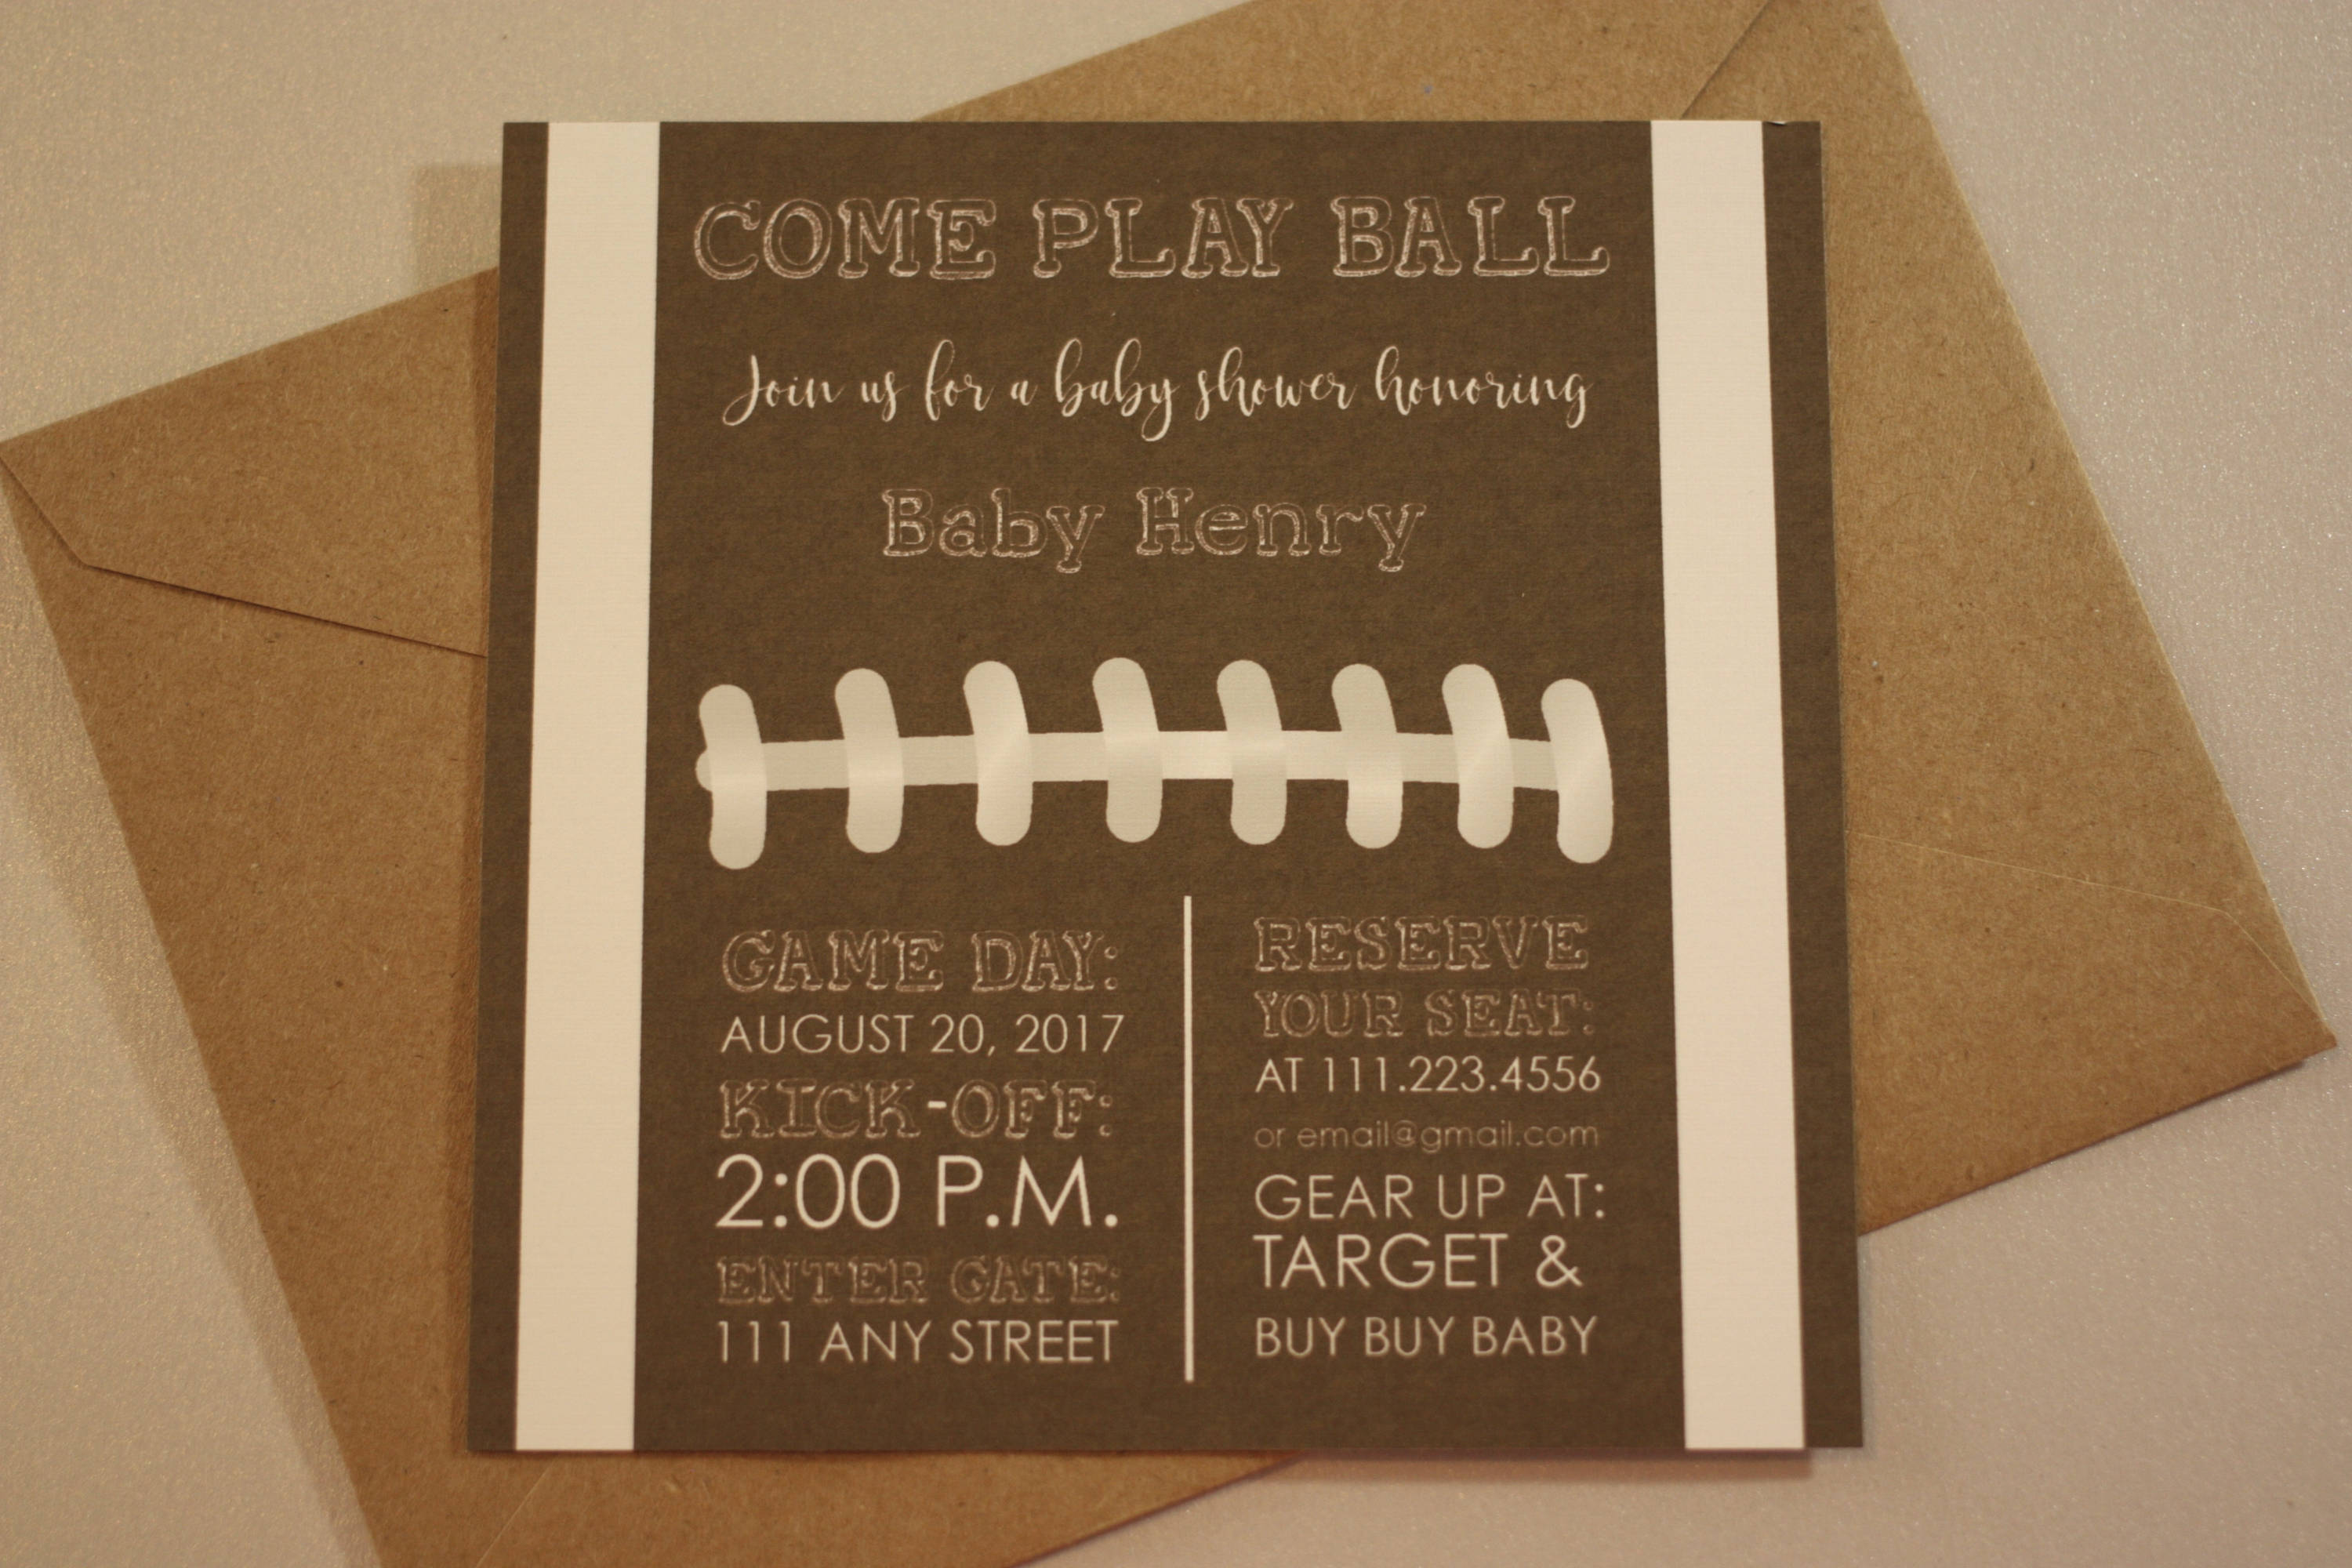 Football Baby Shower Invitation With Envelopes   Printed Invites And Color  Envelopes   Square Invite